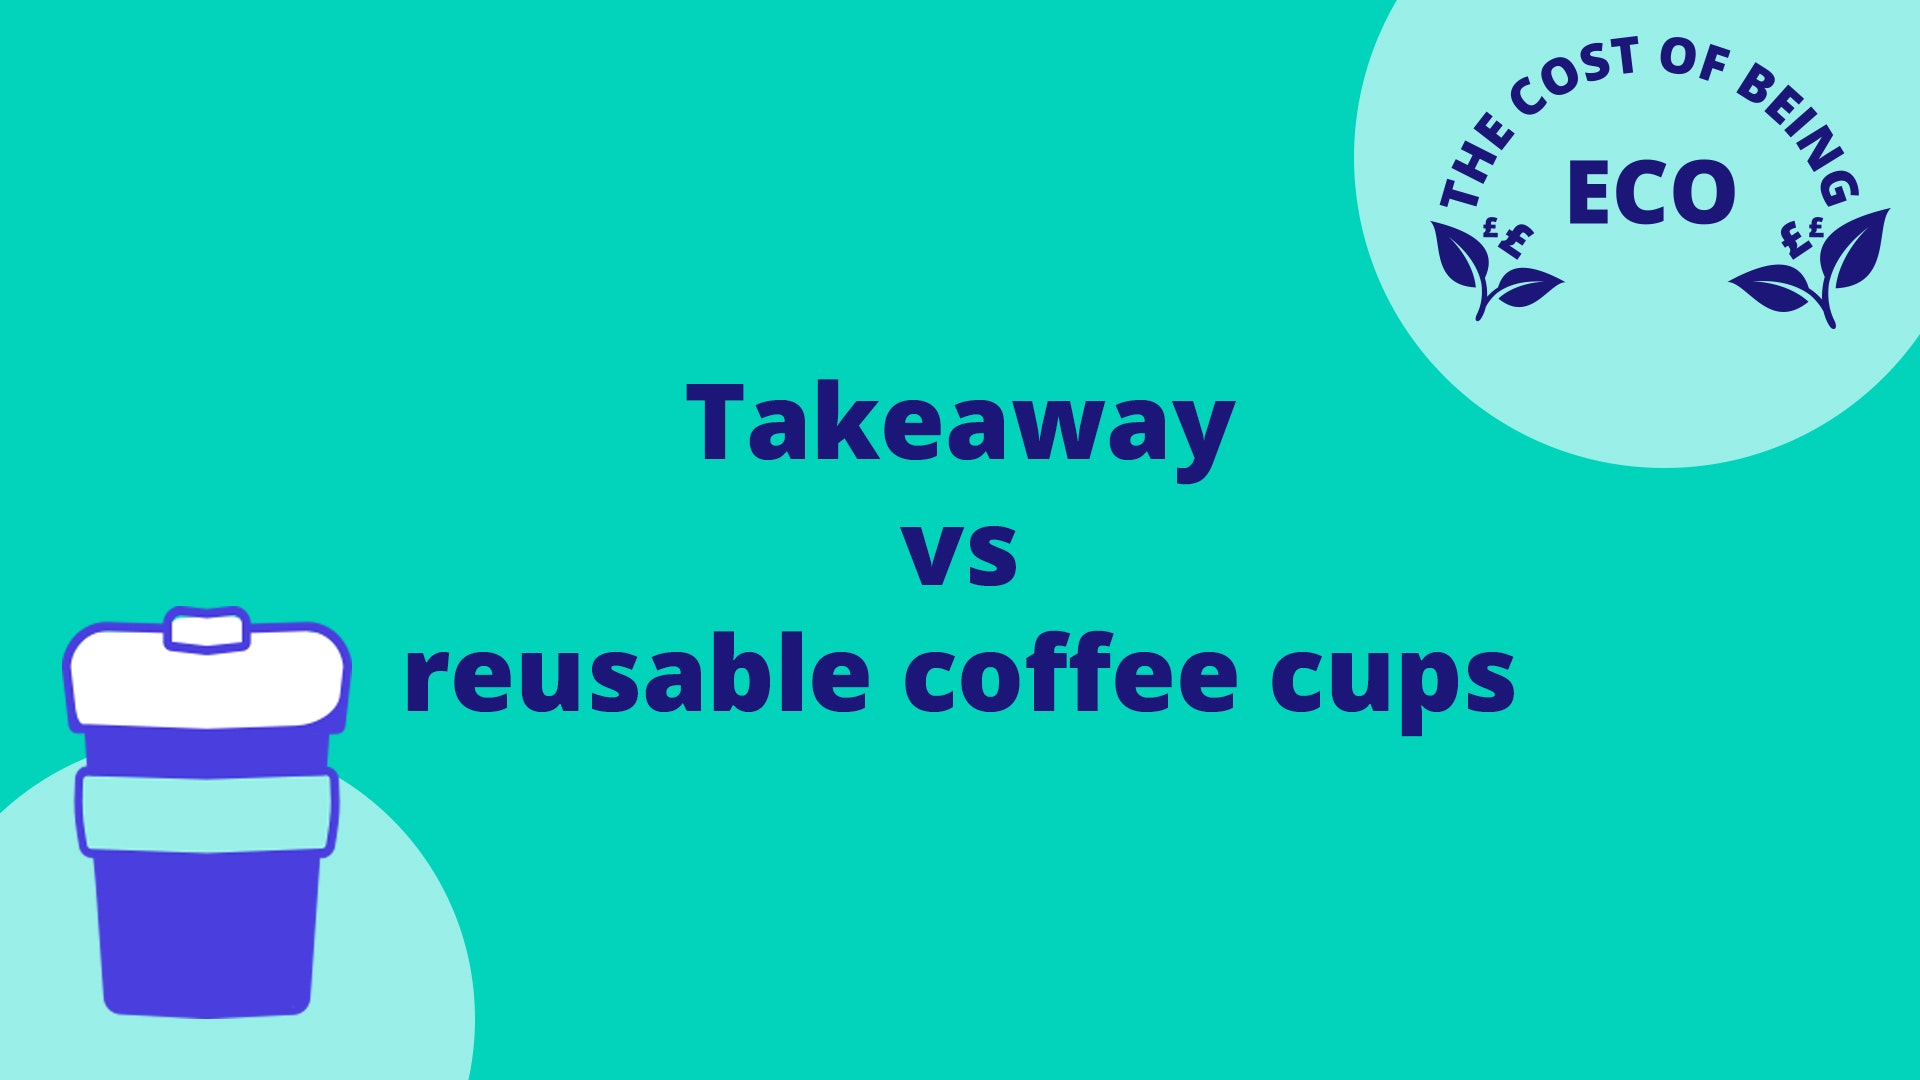 the-cost-of-being-eco-takeaway-coffee-cups-vs-reusable-alternatives